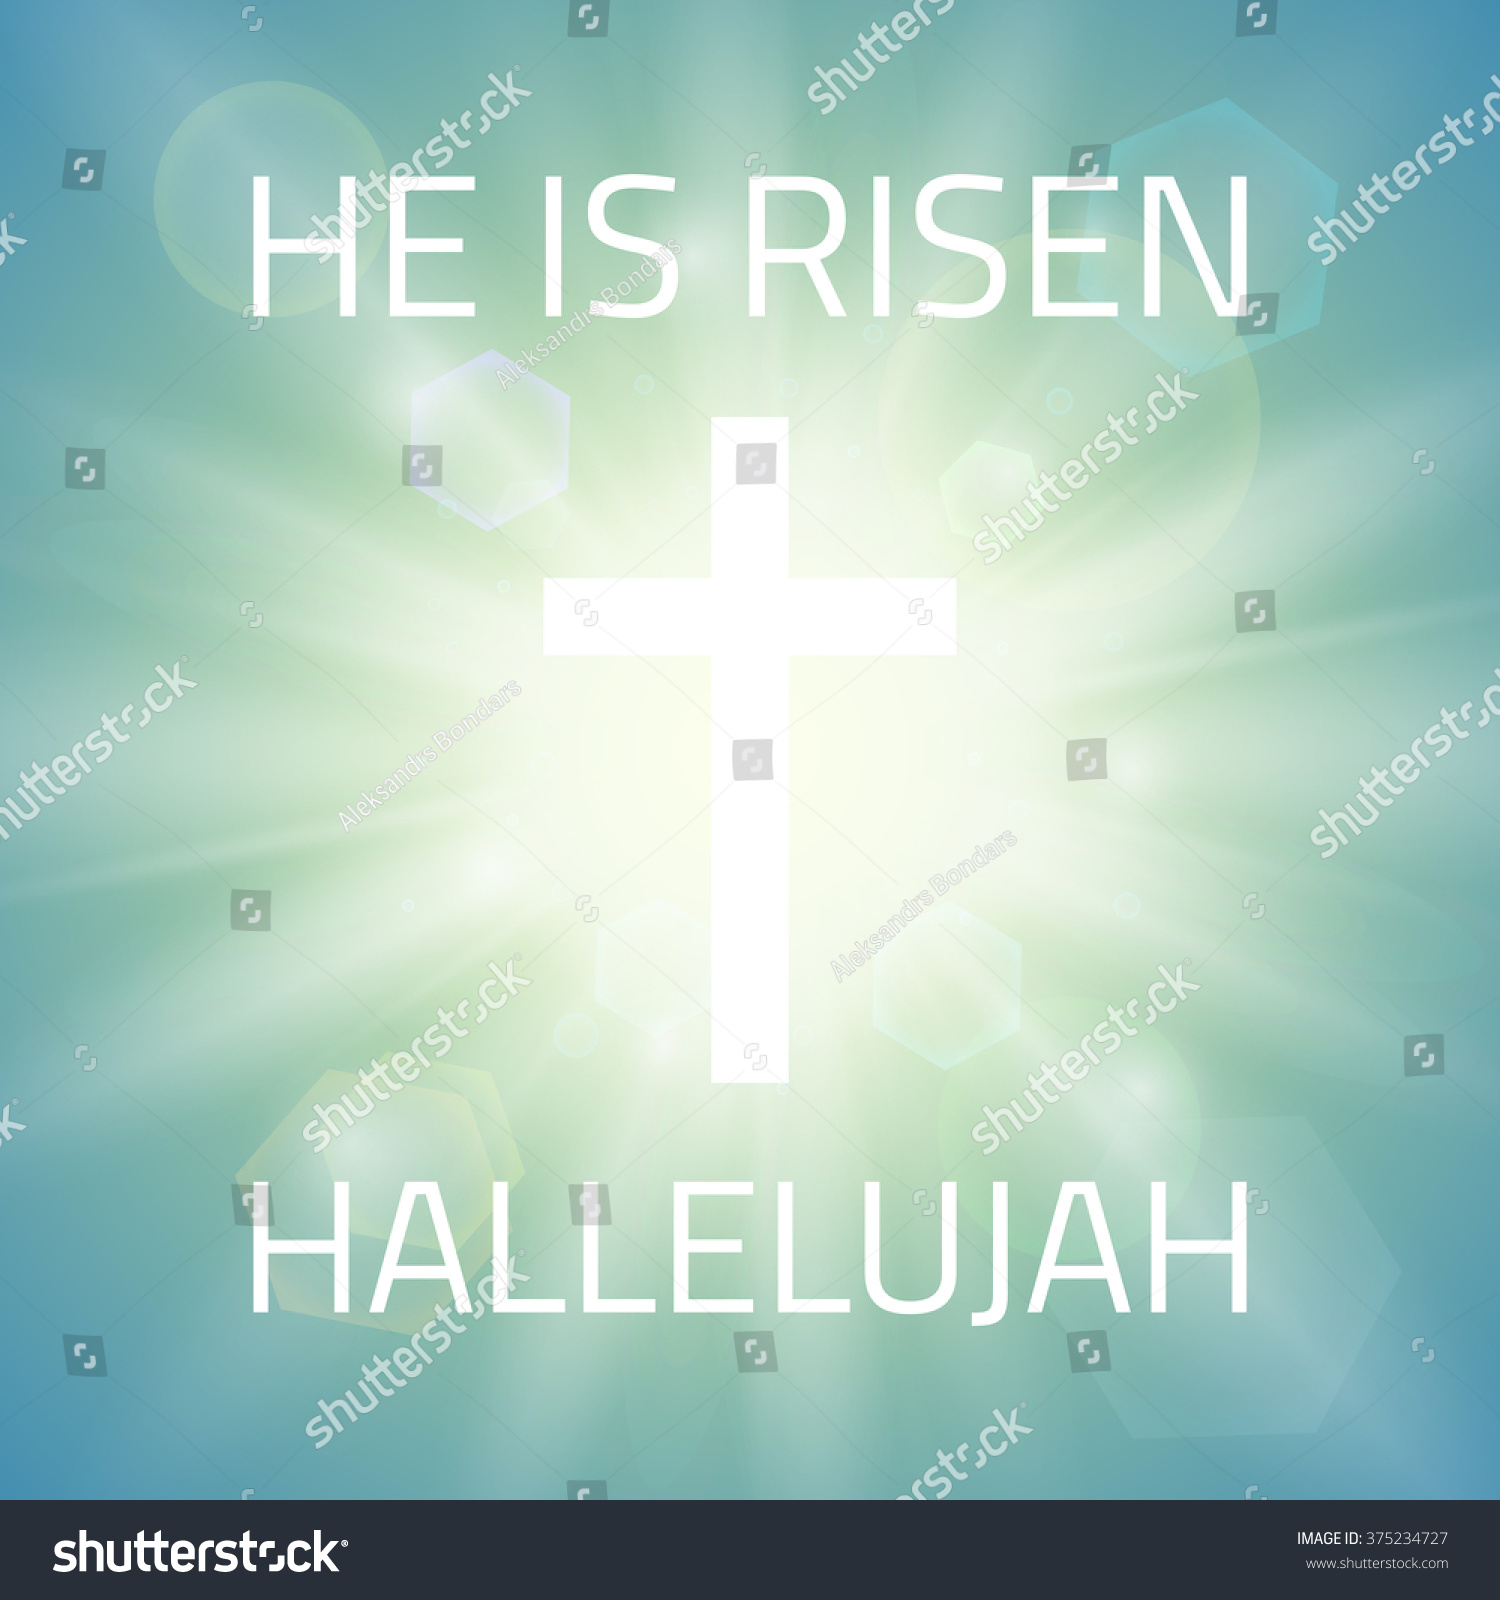 Images of Hallelujah Easter - The Miracle of Easter